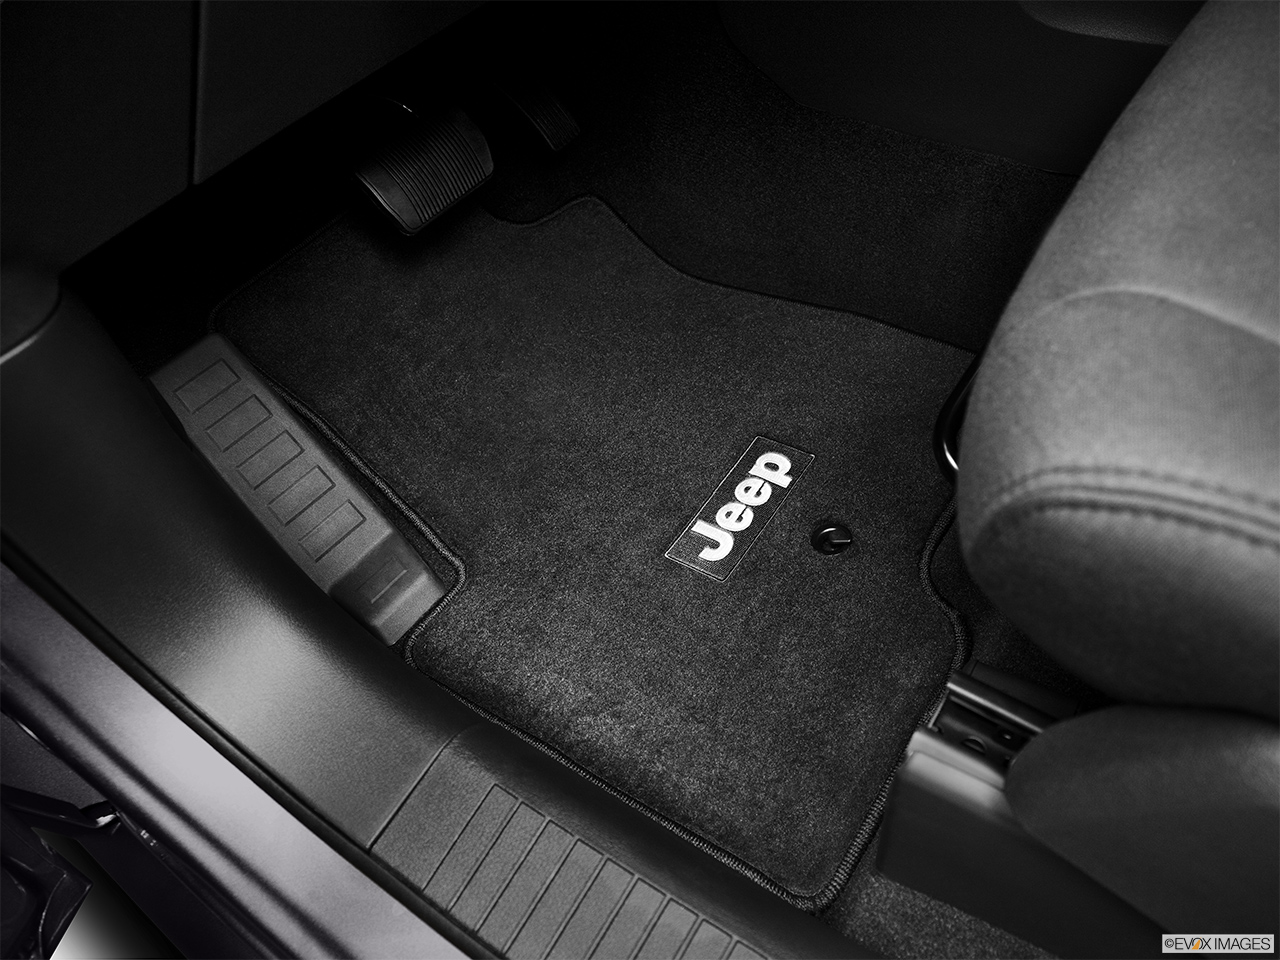 2012 Jeep Patriot Sport Driver's floor mat and pedals. Mid-seat level from outside looking in.